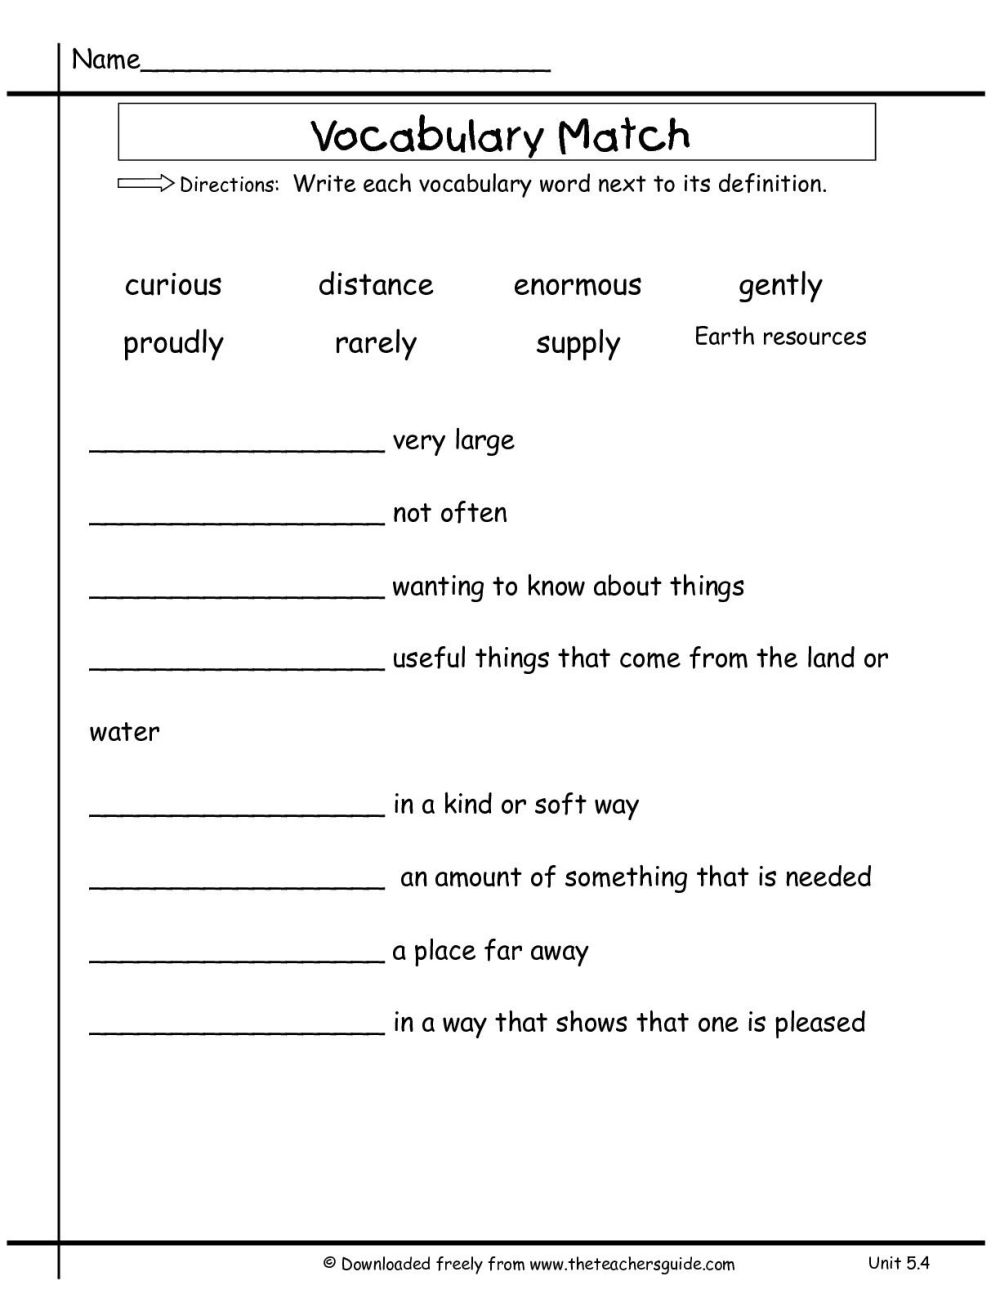 medium resolution of 2nd Grade Find The Main Idea Worksheets   Printable Worksheets and  Activities for Teachers